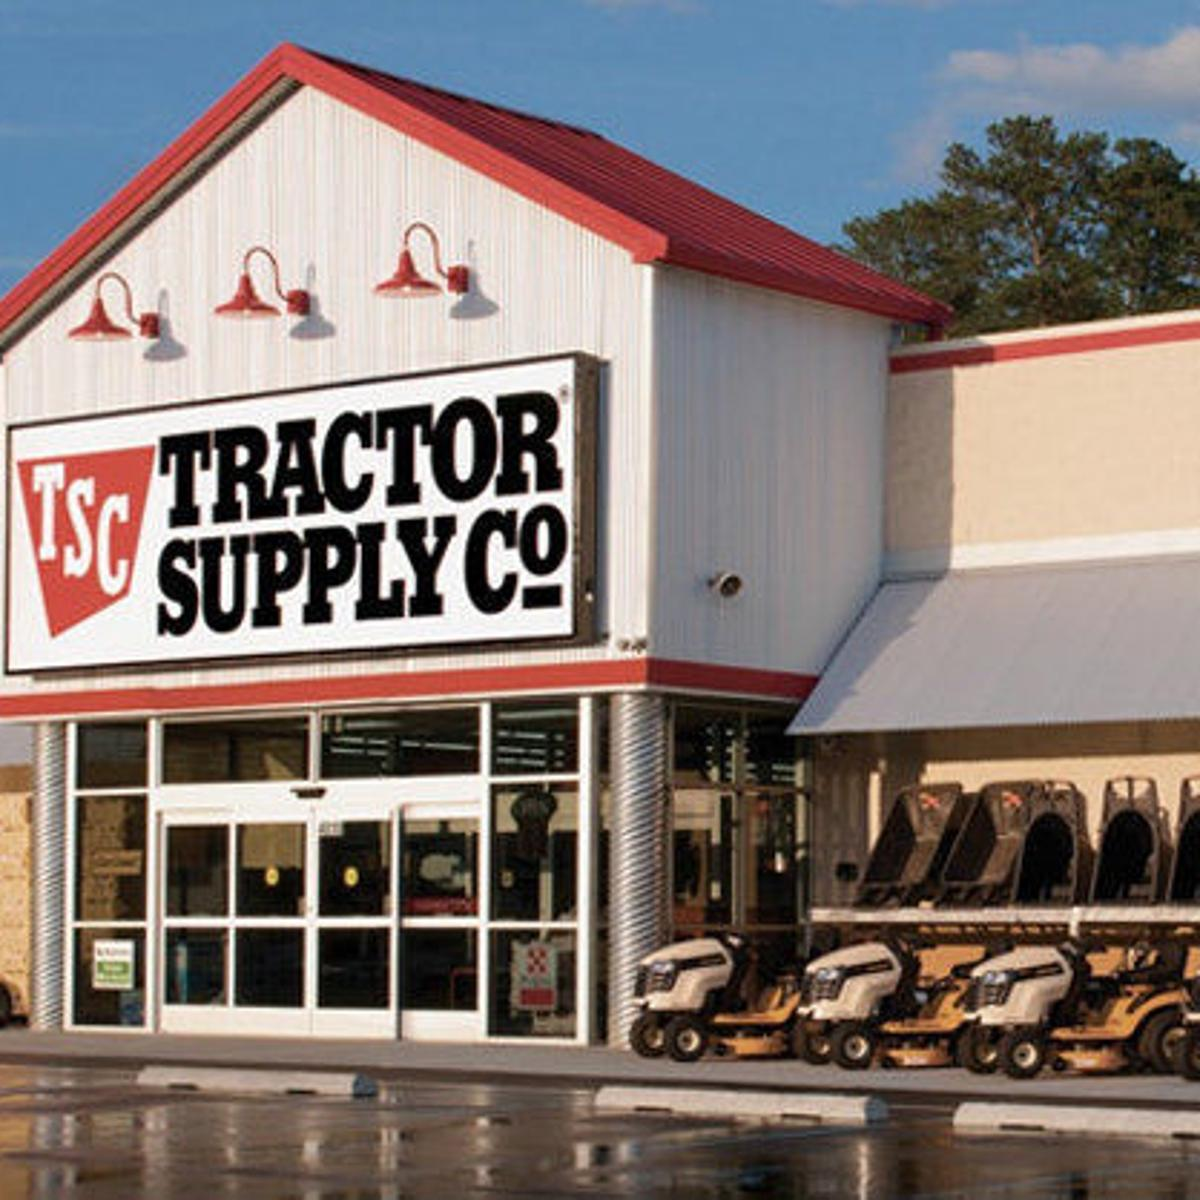 Tractor Supply Co  to open in former Clinton Walmart | Local